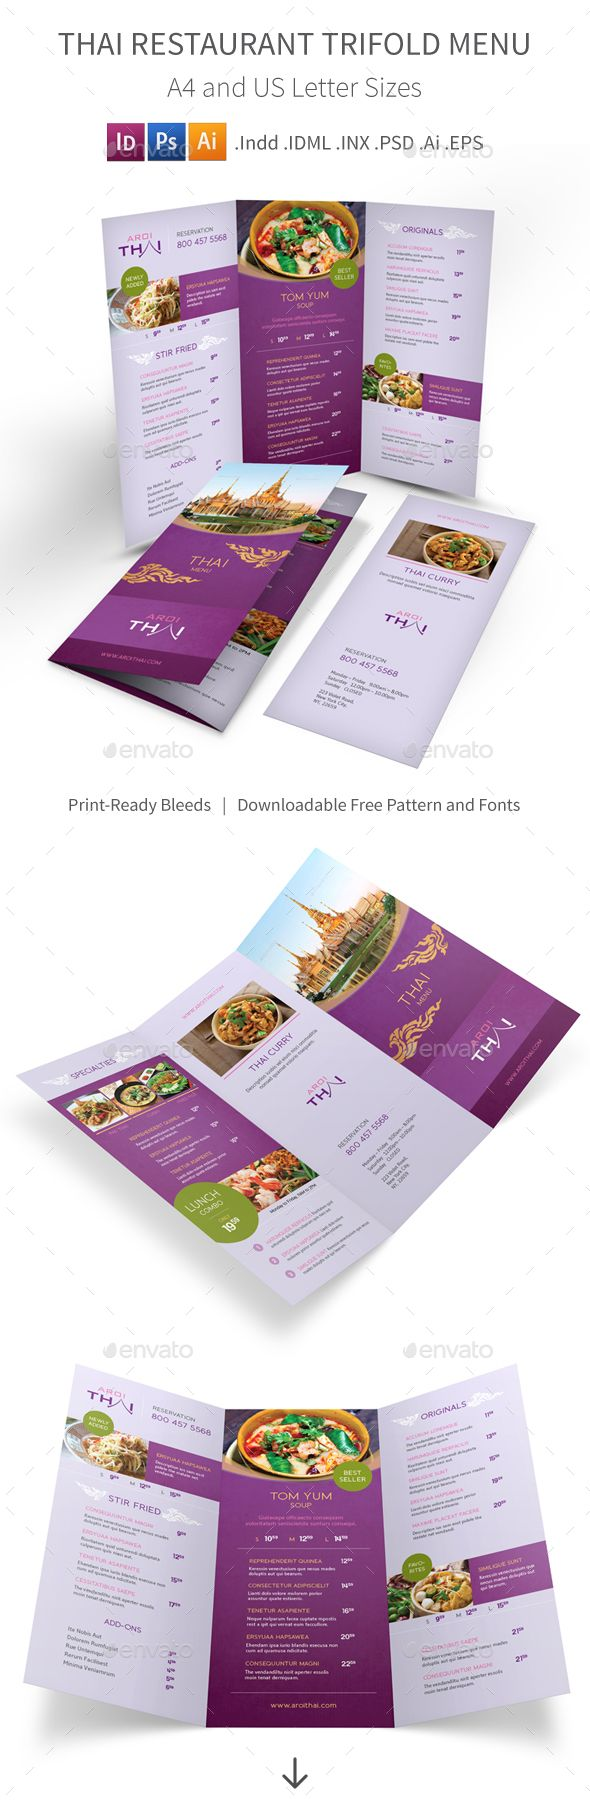 Tasty PSD Thai Restaurant Trifold Menu 2 Template • Only available here ➝ http://graphicriver.net/item/thai-restaurant-trifold-menu-2/16258906?ref=pxcr